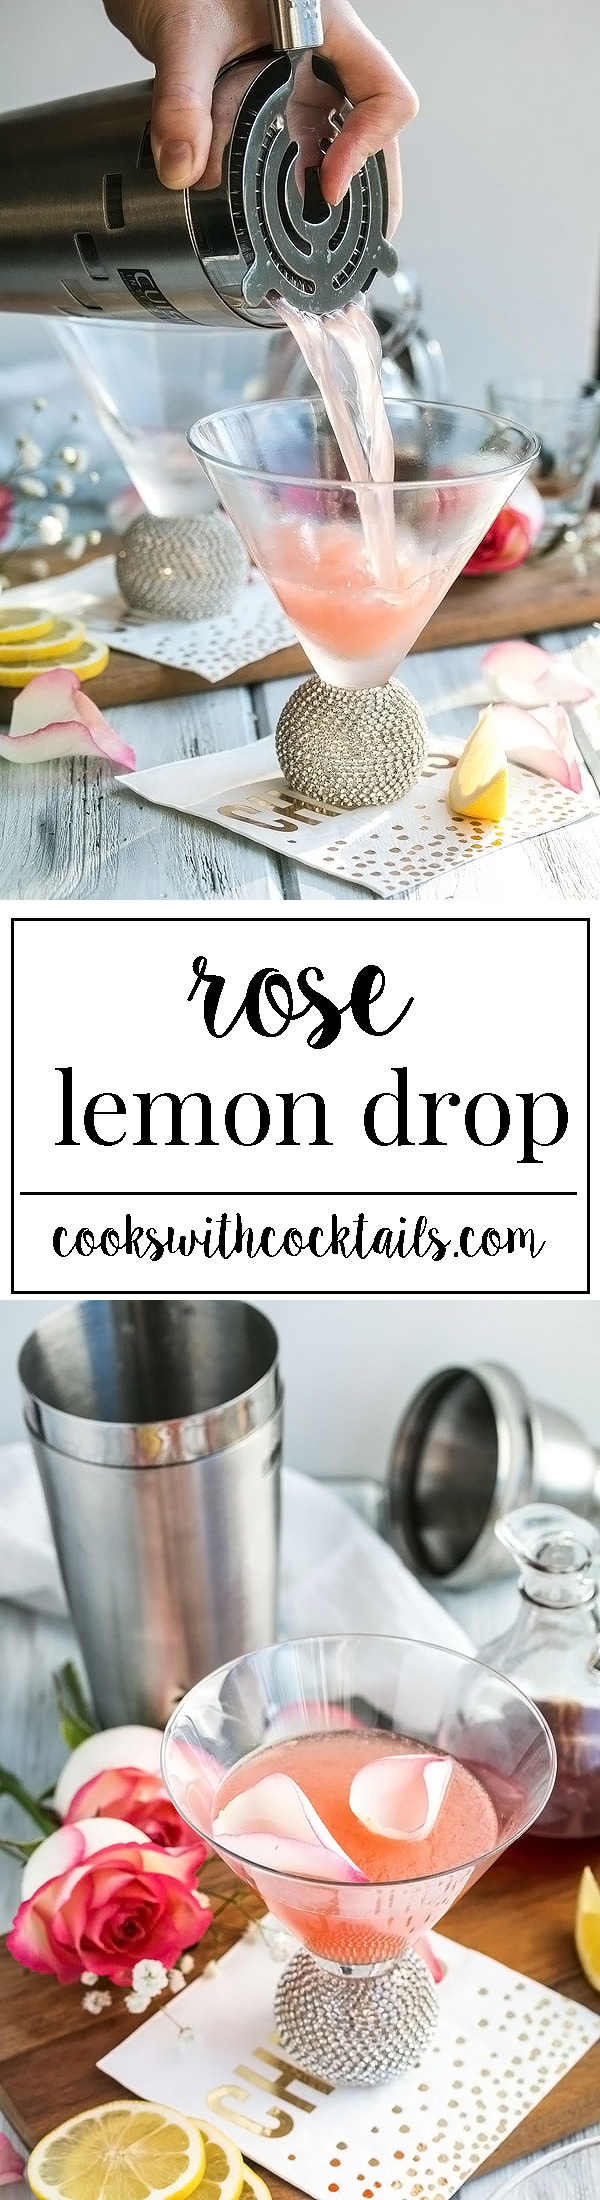 Even better than the classic cocktail.  The perfect lemon drop martini infused with homemade rose simple syrup. Its tart, sweet, floral, and an easy cocktail to make and drink a lot of! #cookswithcocktails #lemondrop #martinirecipe #pinkcocktails #lemonmartini #cocktailrecipe